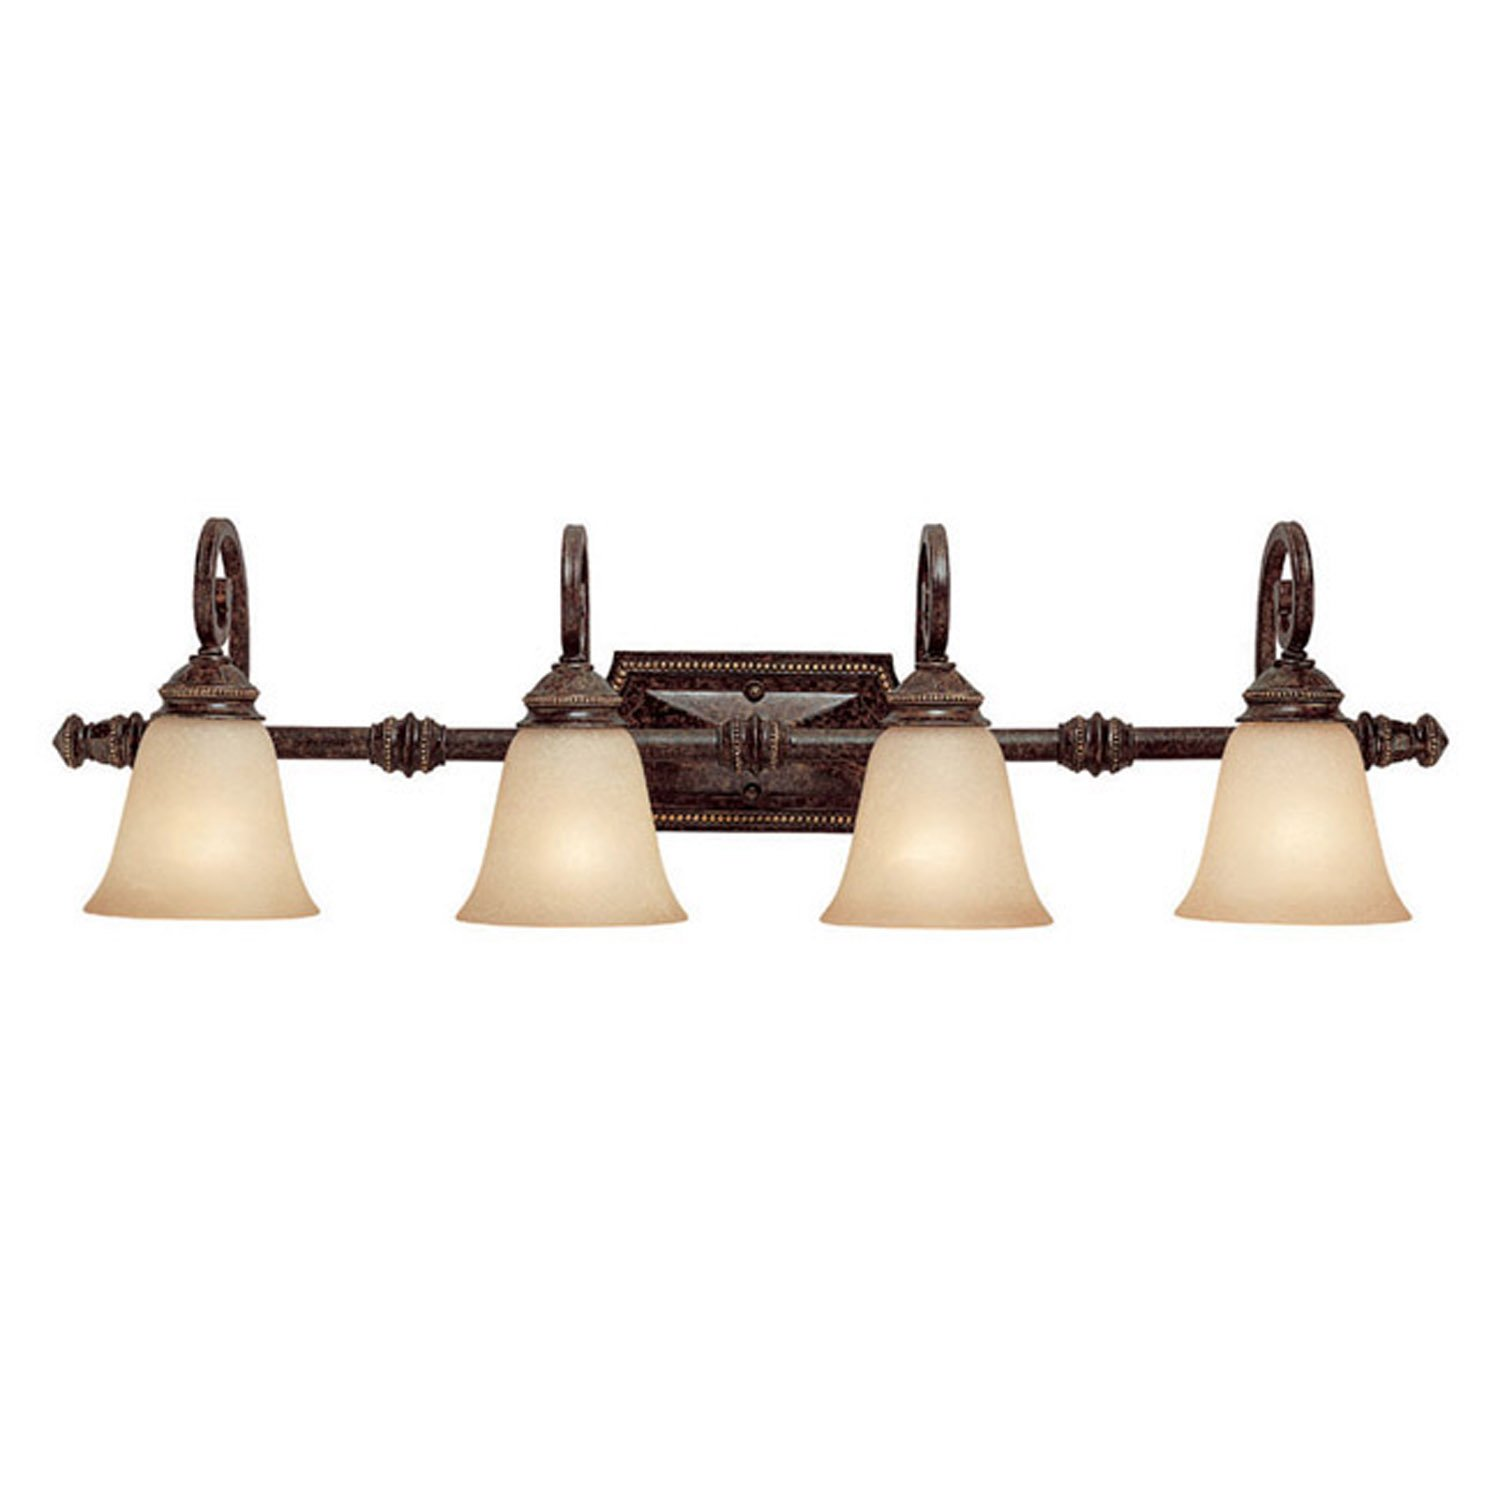 Capital Lighting 1524CB-287 Vanity with Mist Scavo Glass Shades, Chesterfield Brown Finish